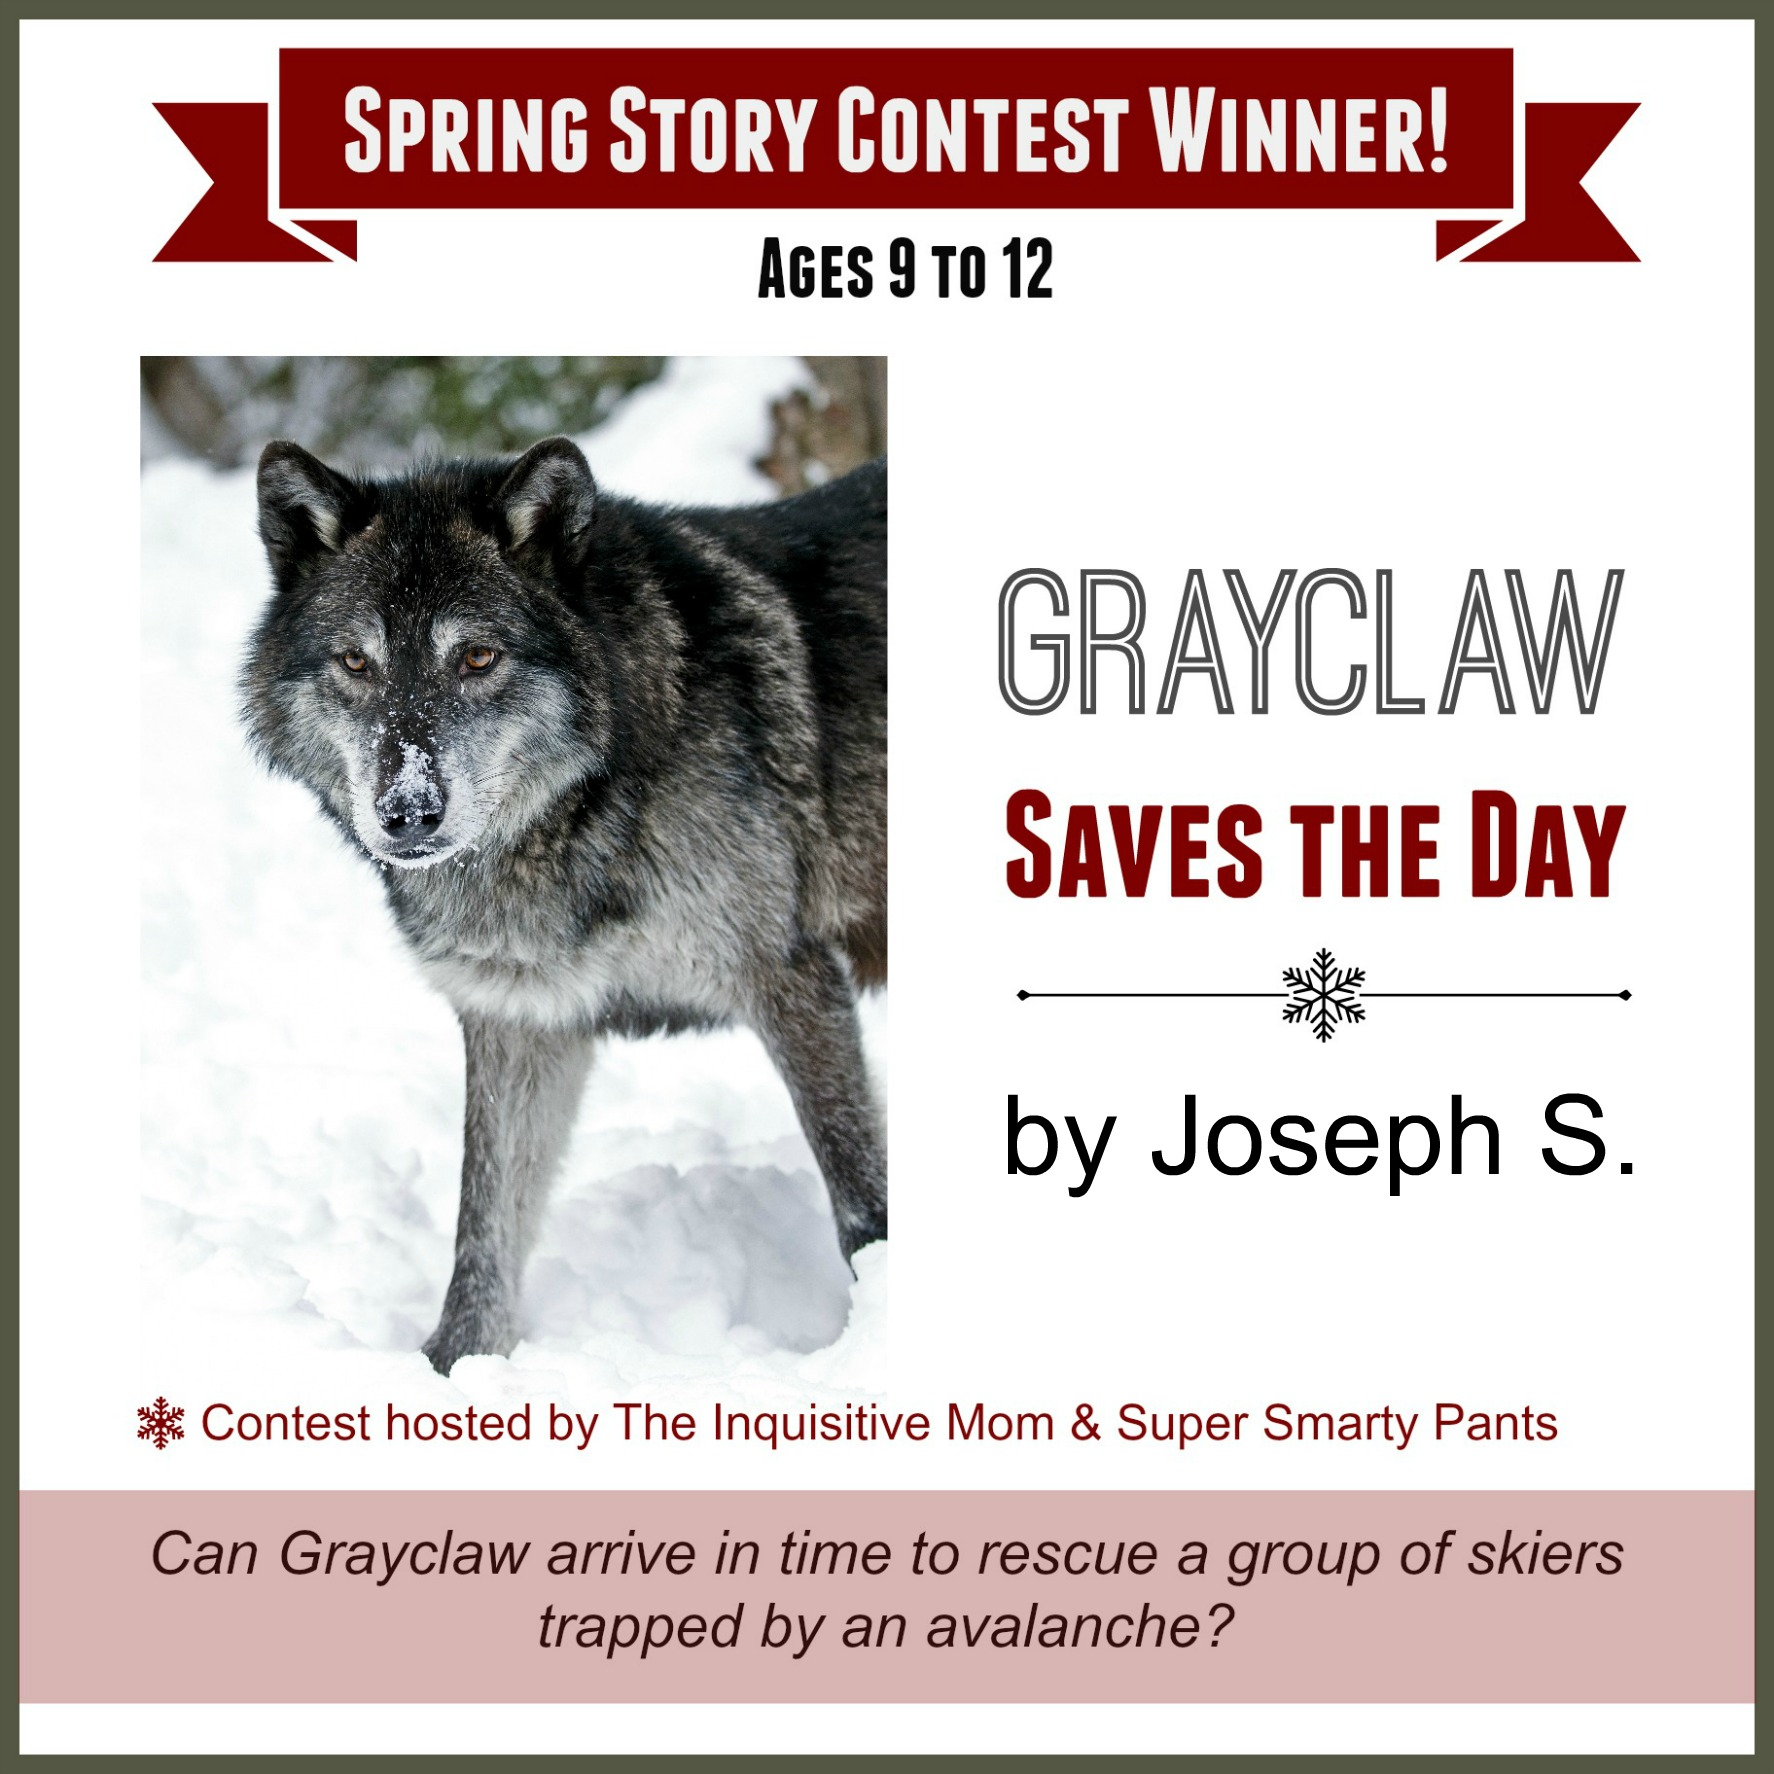 Spring Story Contest Winner Grayclaw Saves the Day